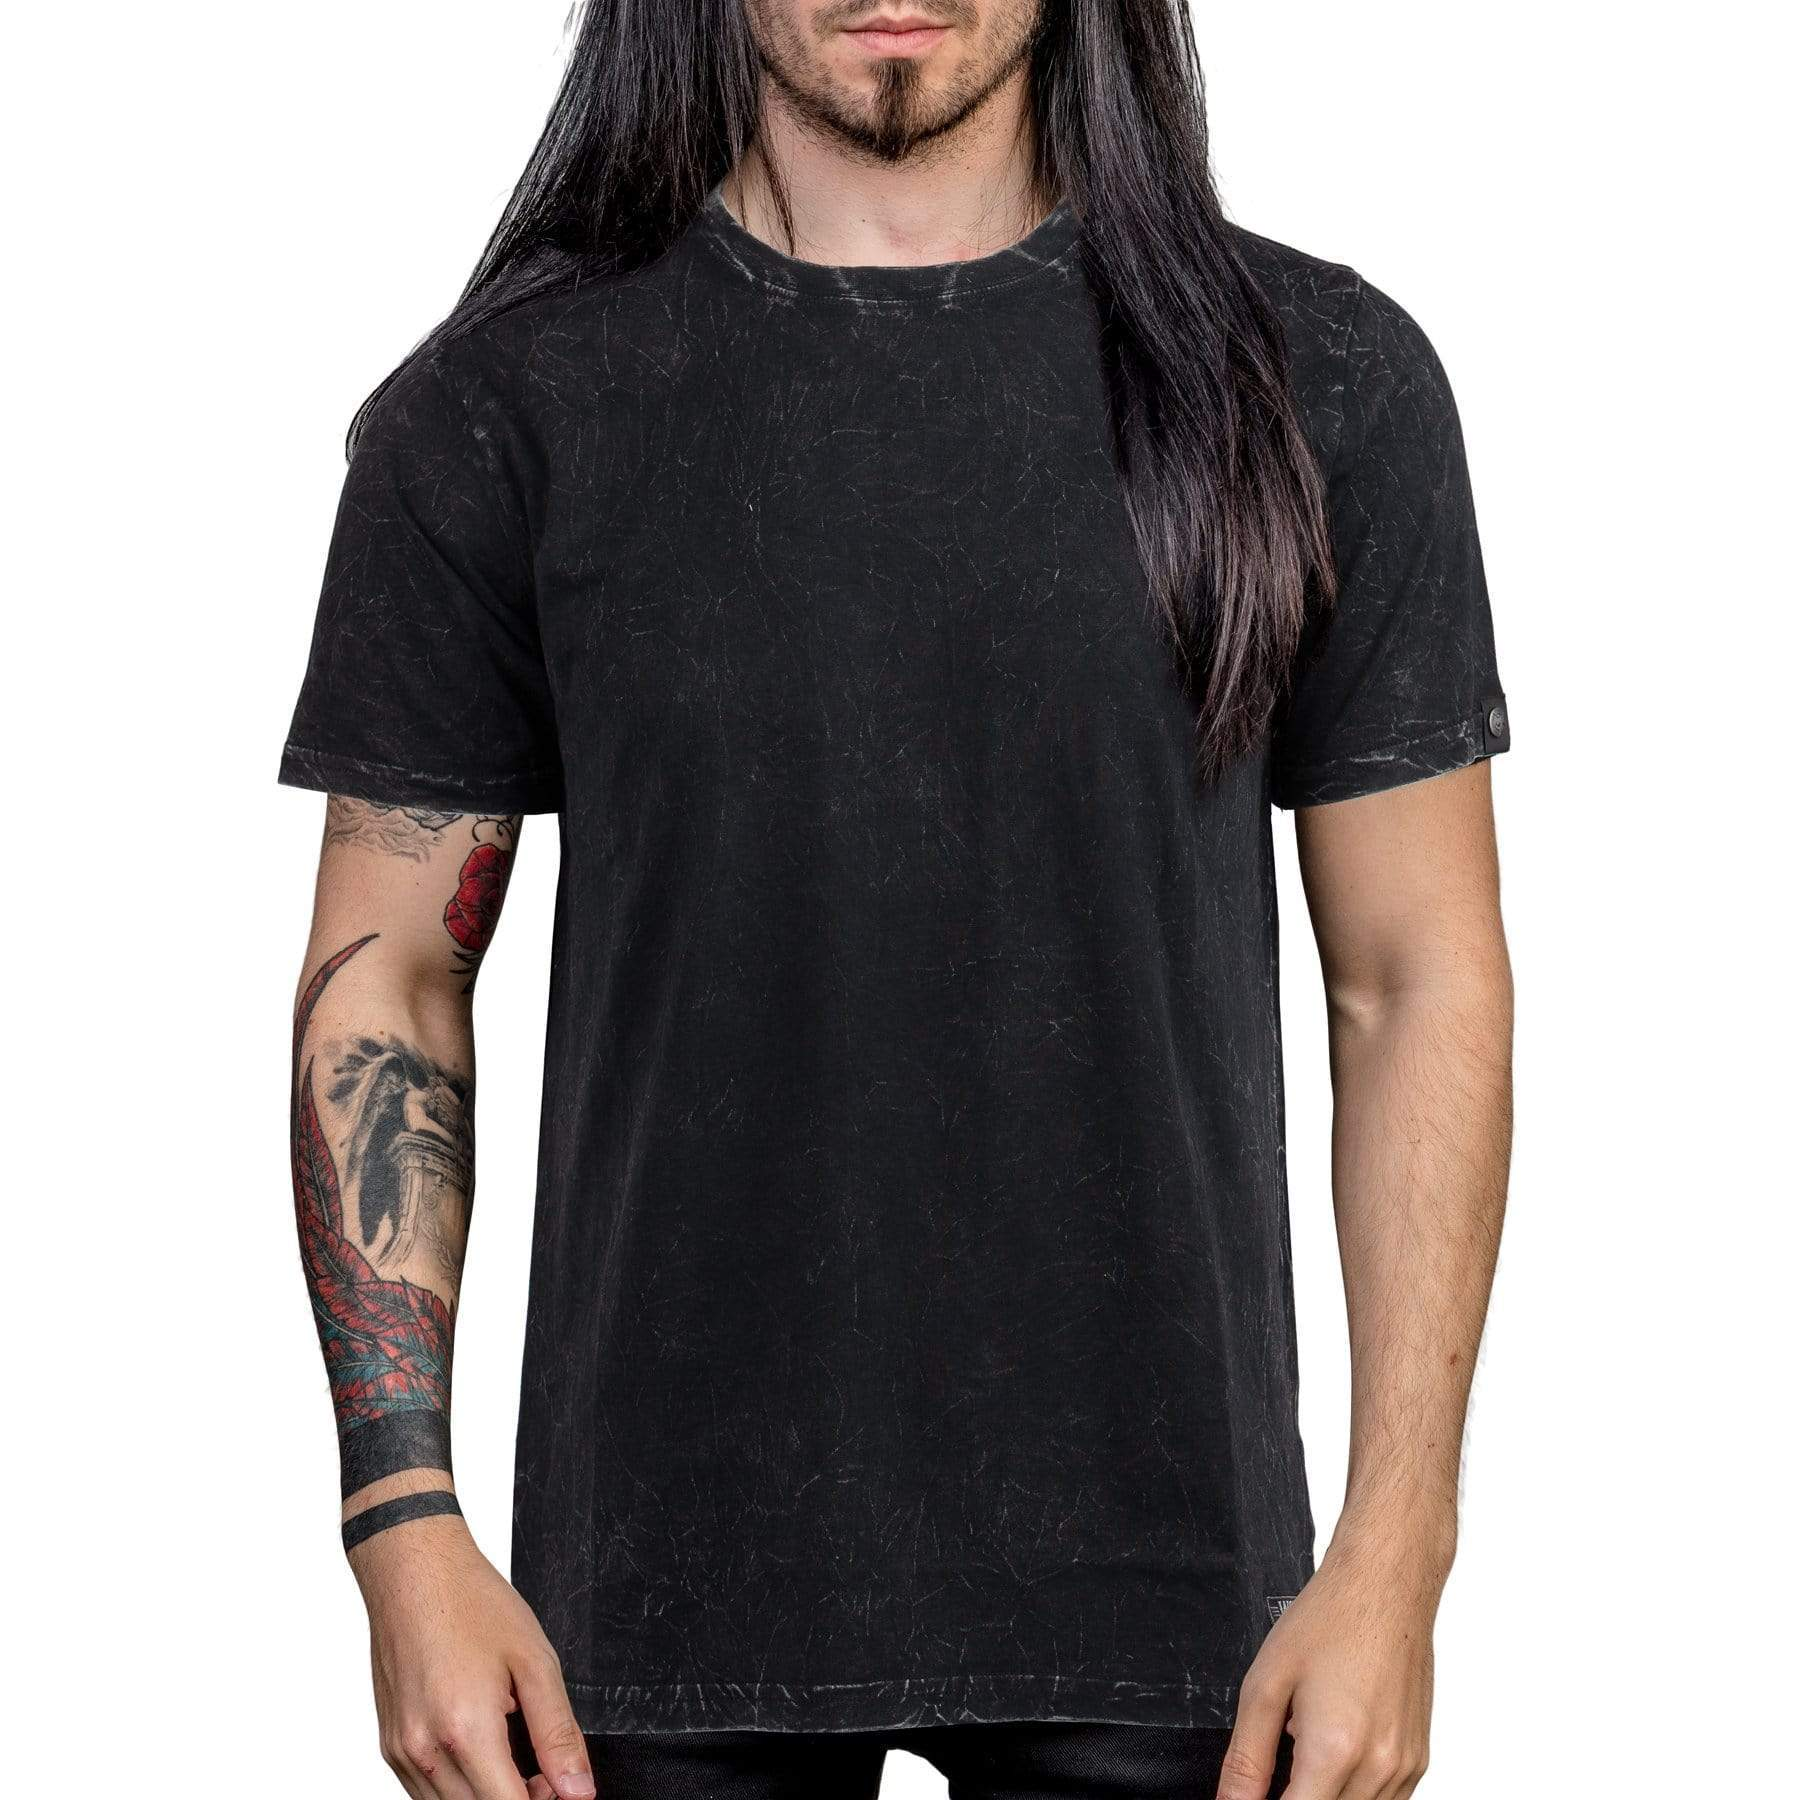 Wornstar Essentials T-shirt - Black Mineral Wash